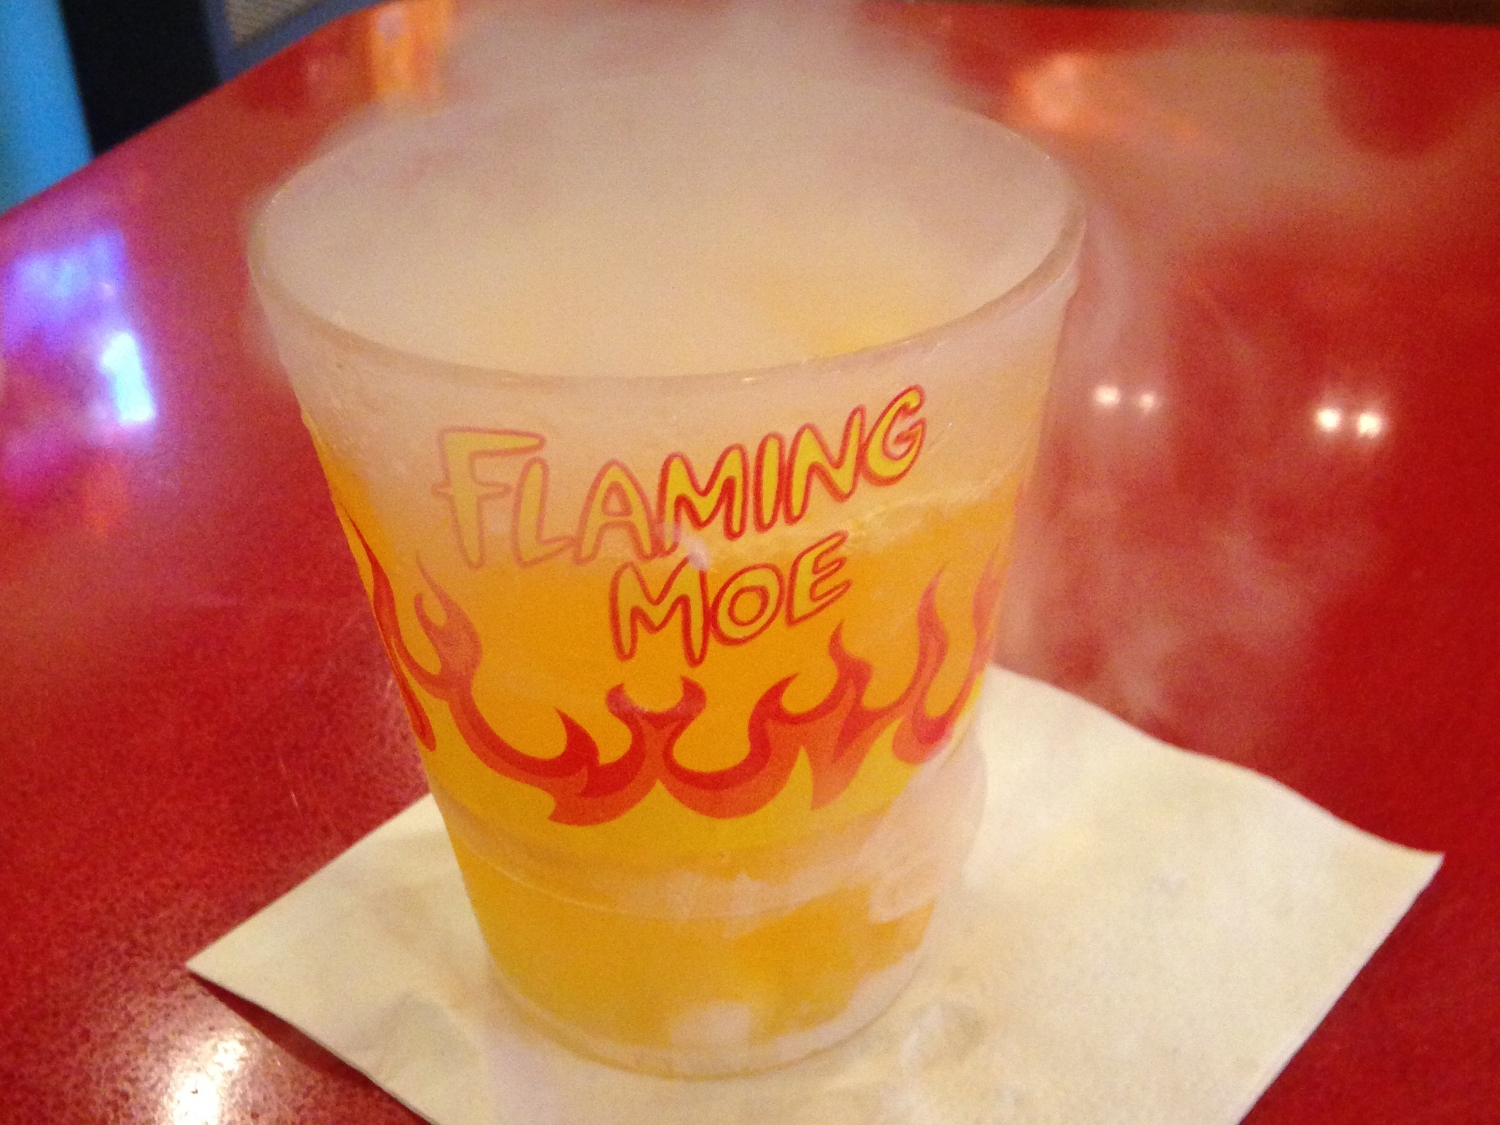 The Flaming Moe drink.